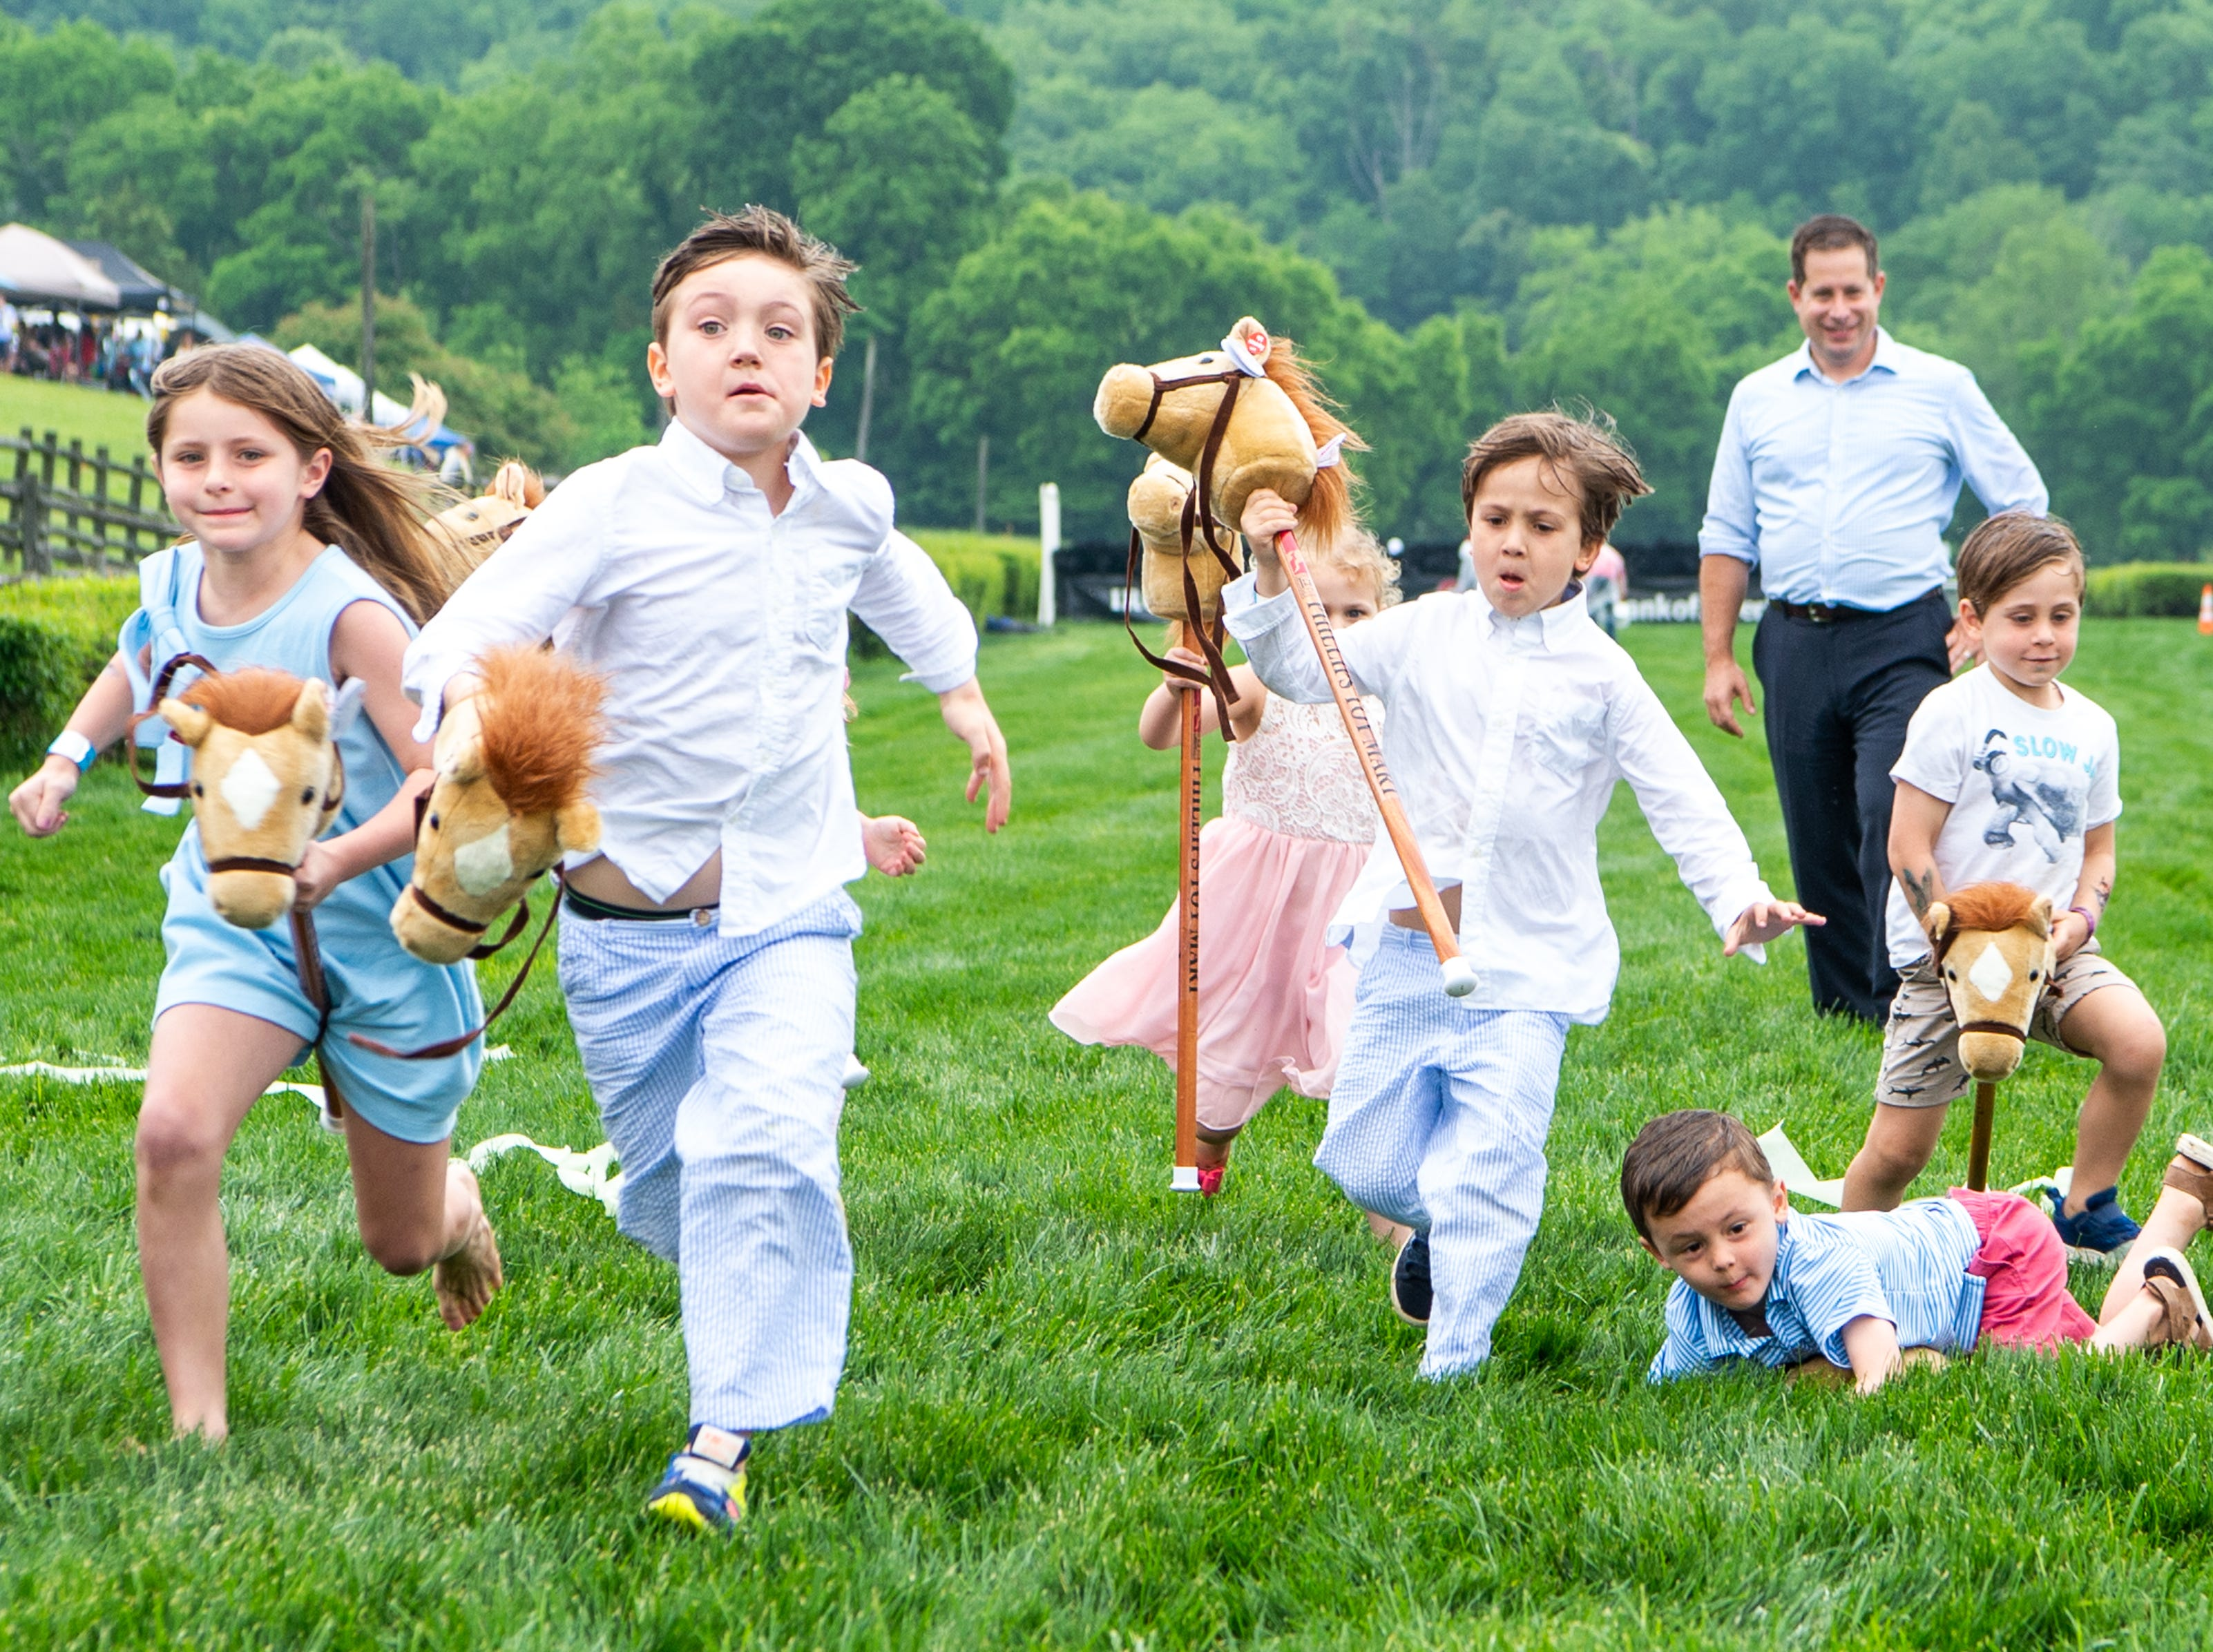 Children compete in the stick horse race during the Iroquois Steeplechase at Percy Warner Park Saturday, May 11, 2019, in Nashville, Tenn.